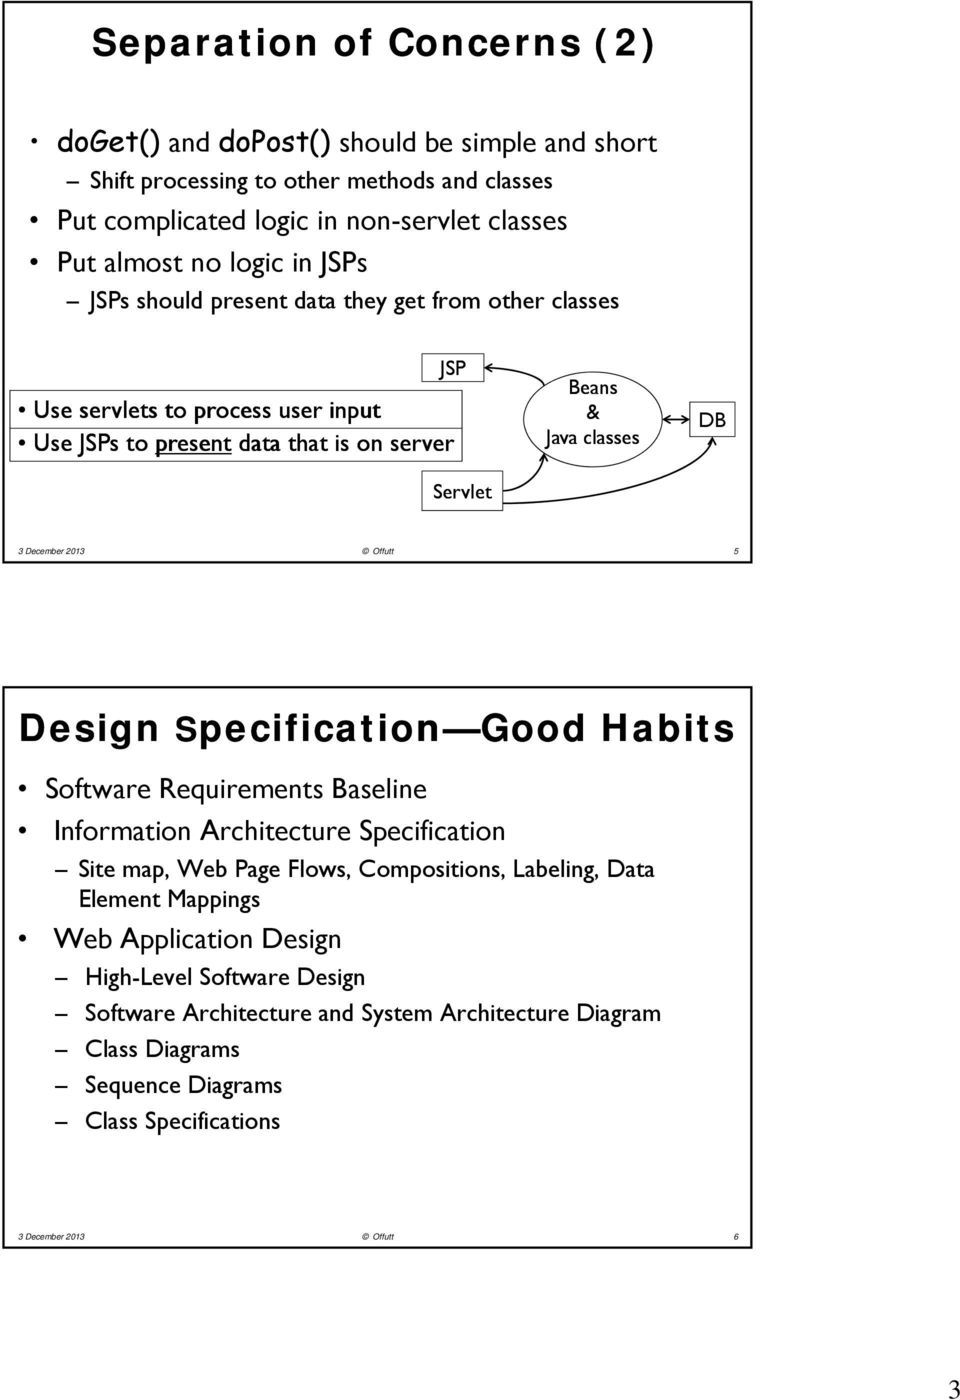 2013 Offutt 5 Design Specification Good Habits Software Requirements Baseline Information Architecture Specification Site map, Web Page Flows, Compositions, Labeling, Data Element